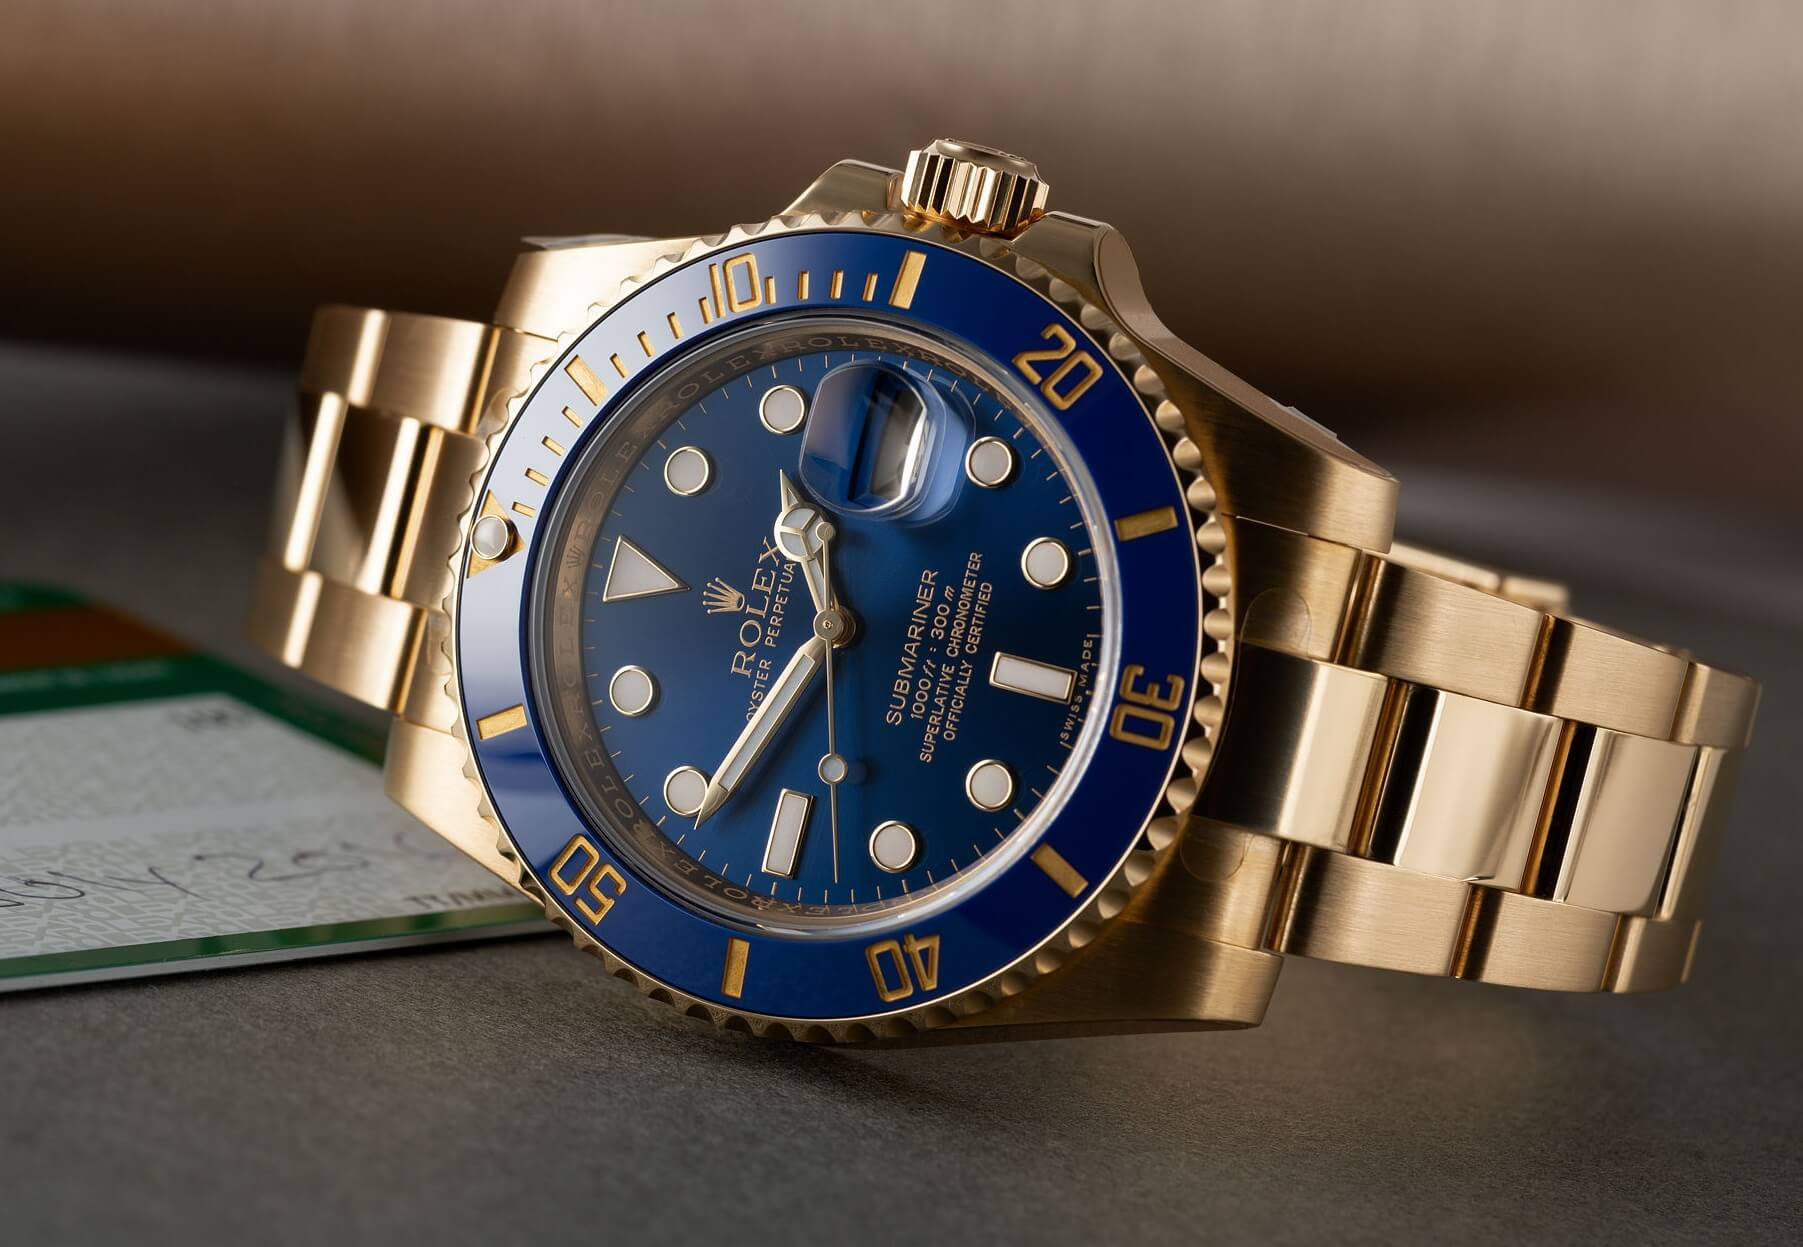 Rolex Submariner fake 116618LB